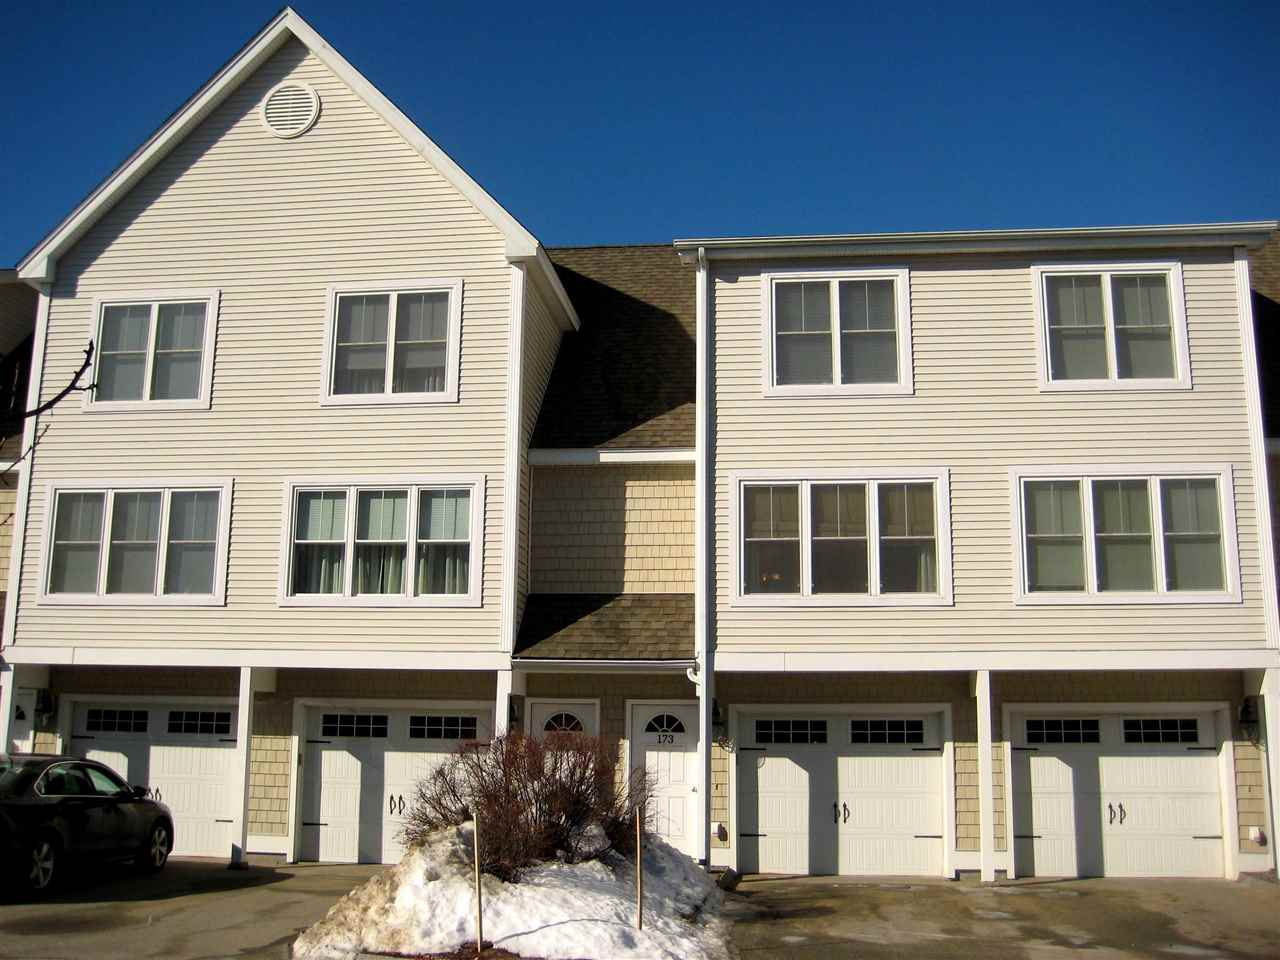 image of Manchester NH Condo | sq.ft. 1164